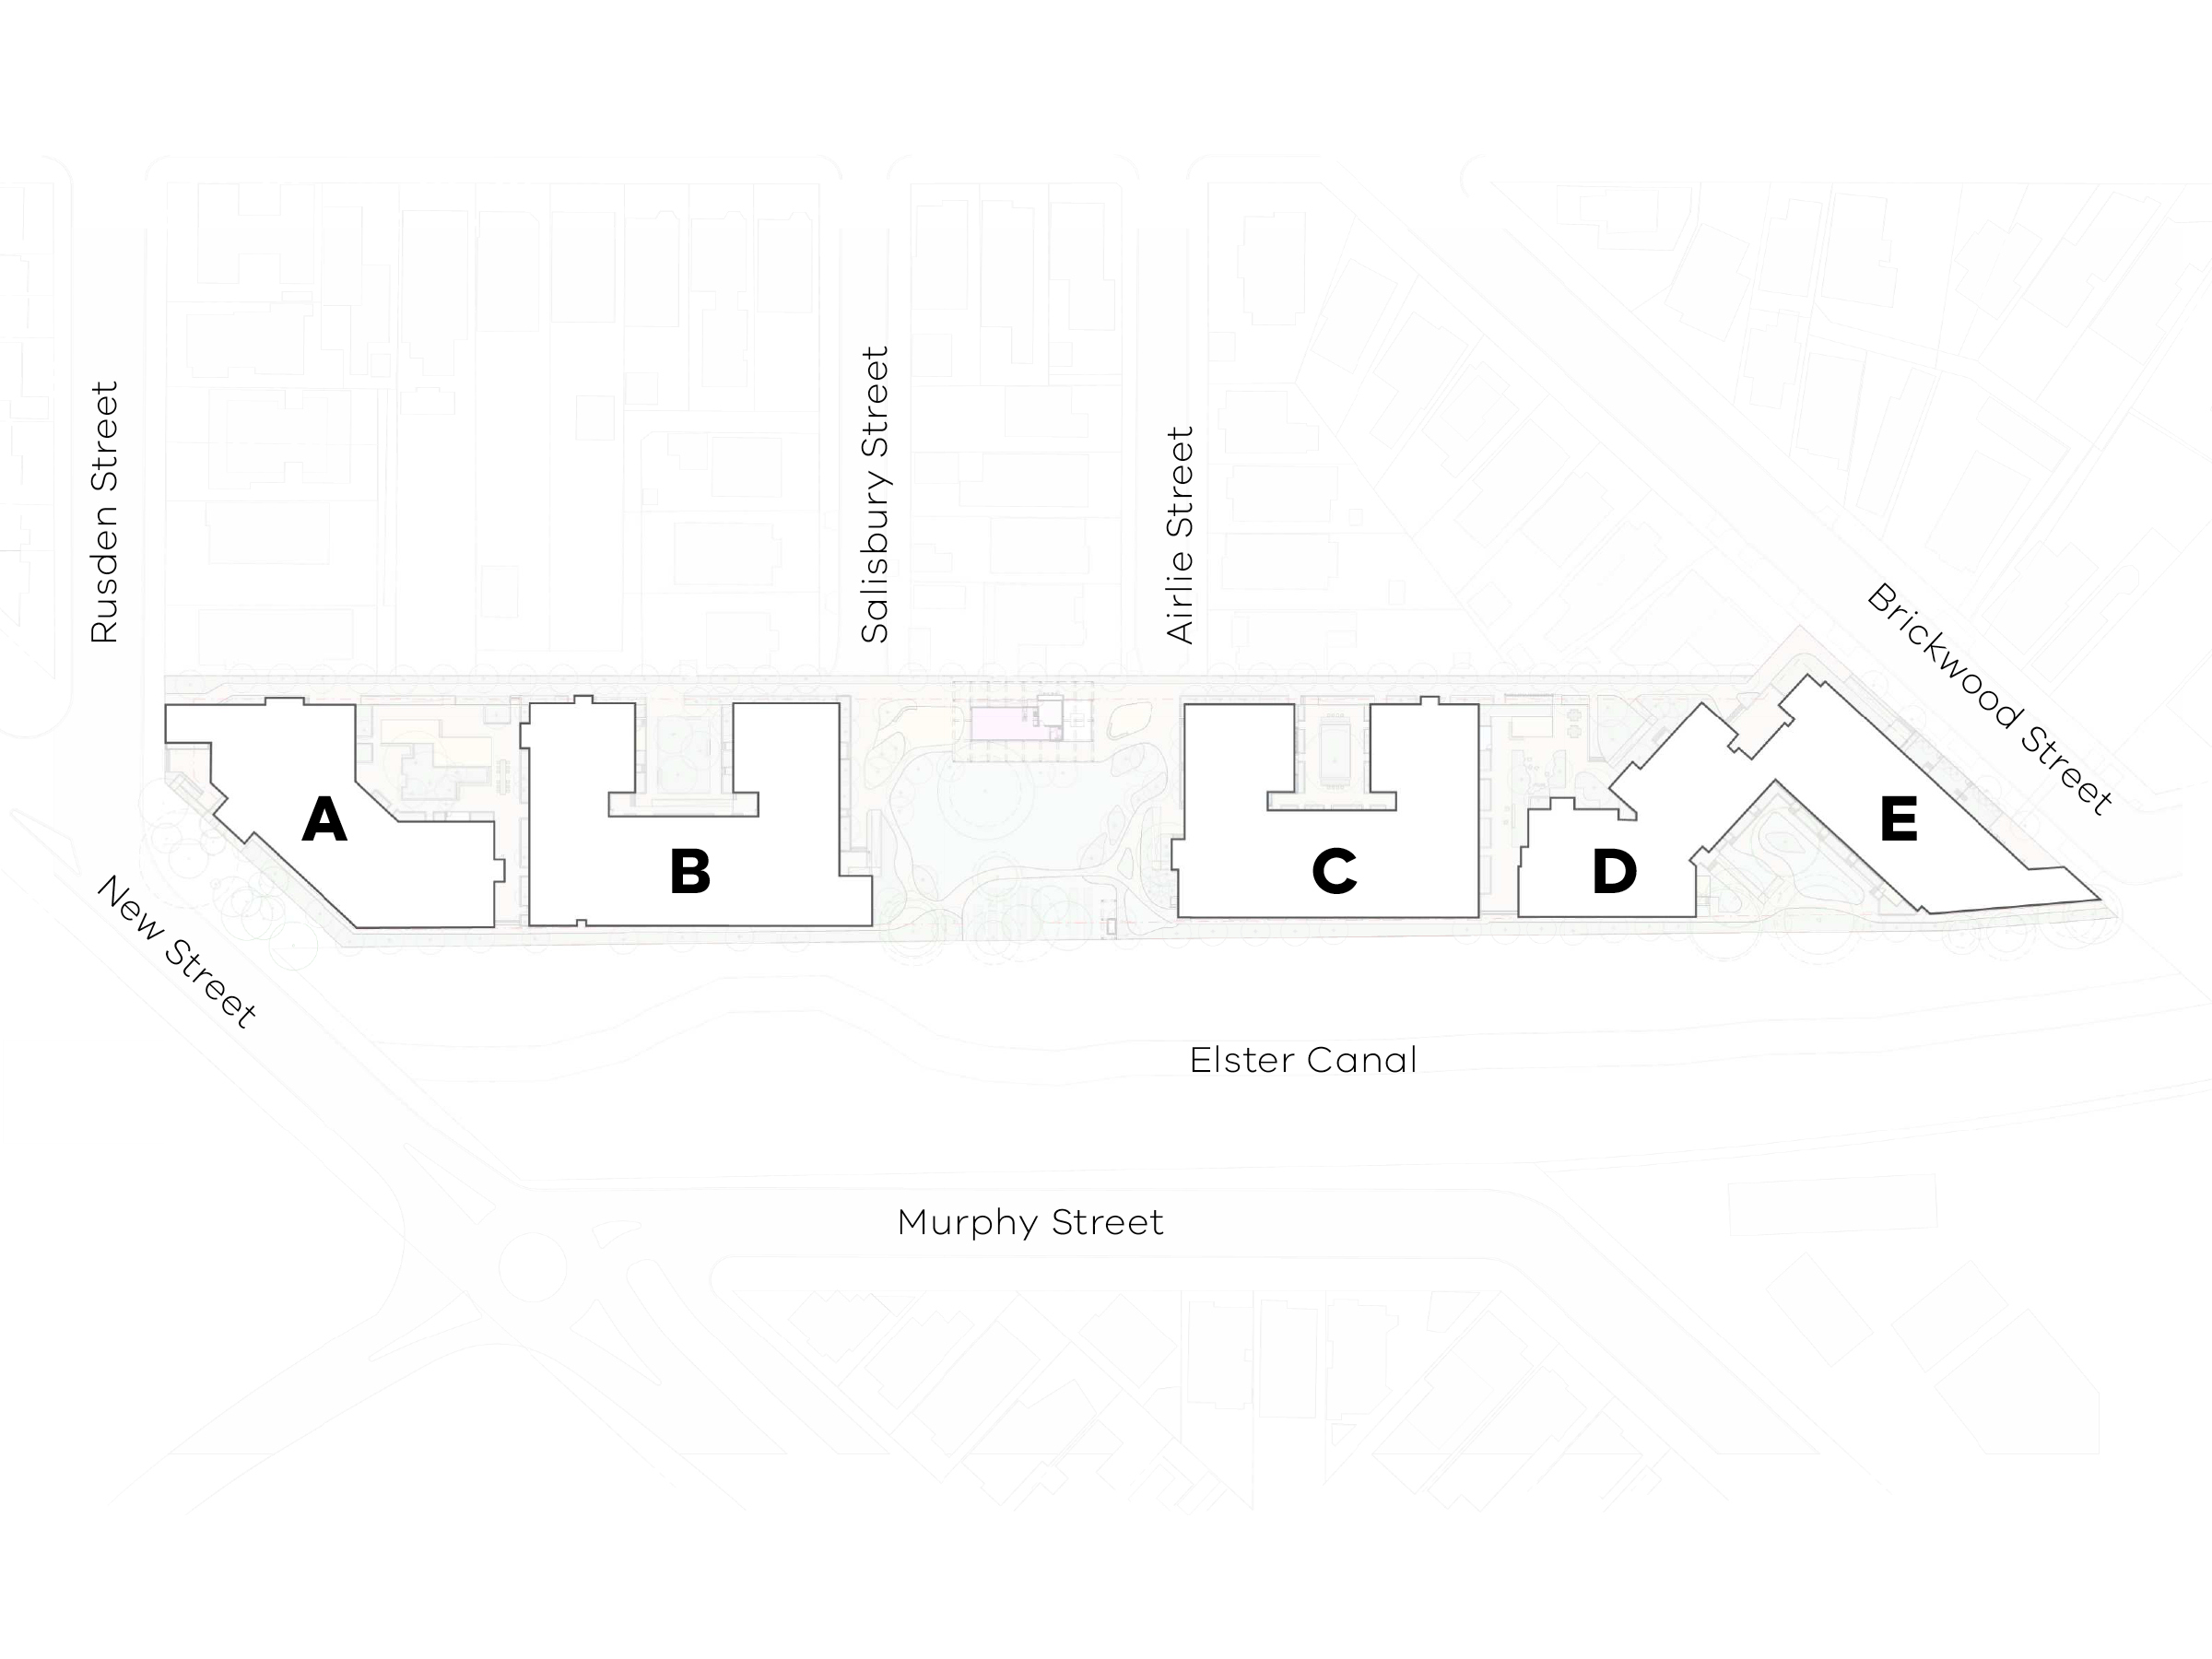 Map showing the access point to the buildings in the new development